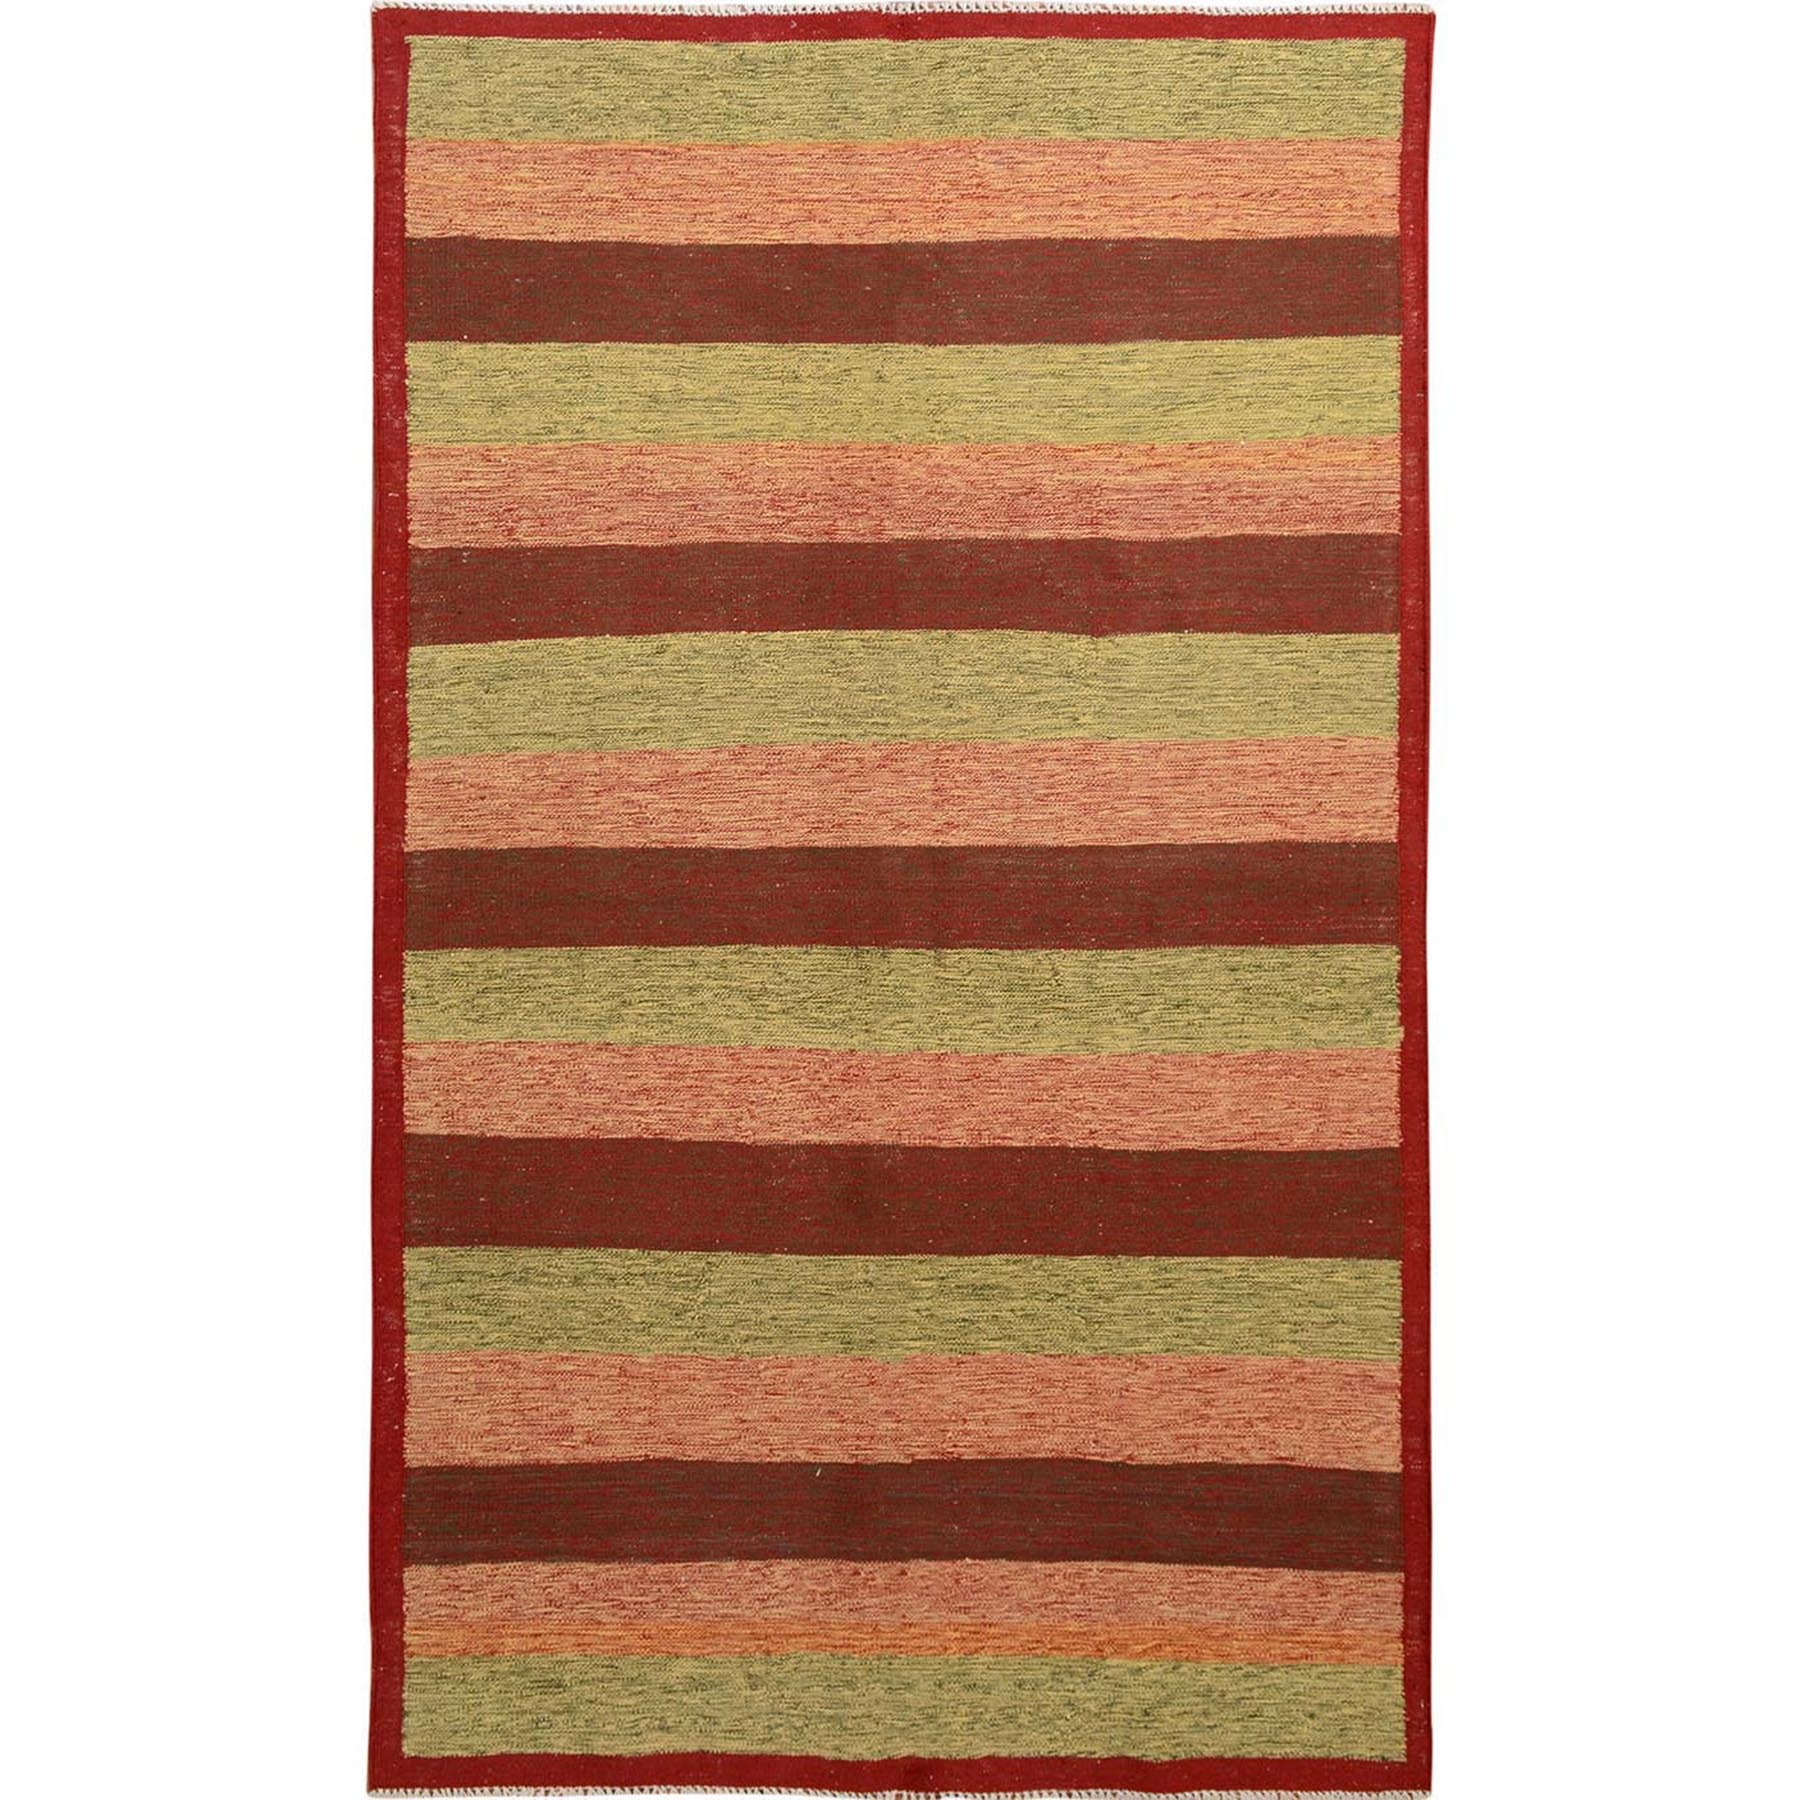 "4'10""x8'1"" Red Afghan Reversible Kilim Pure Wool Hand Woven Striped Oriental Rug"